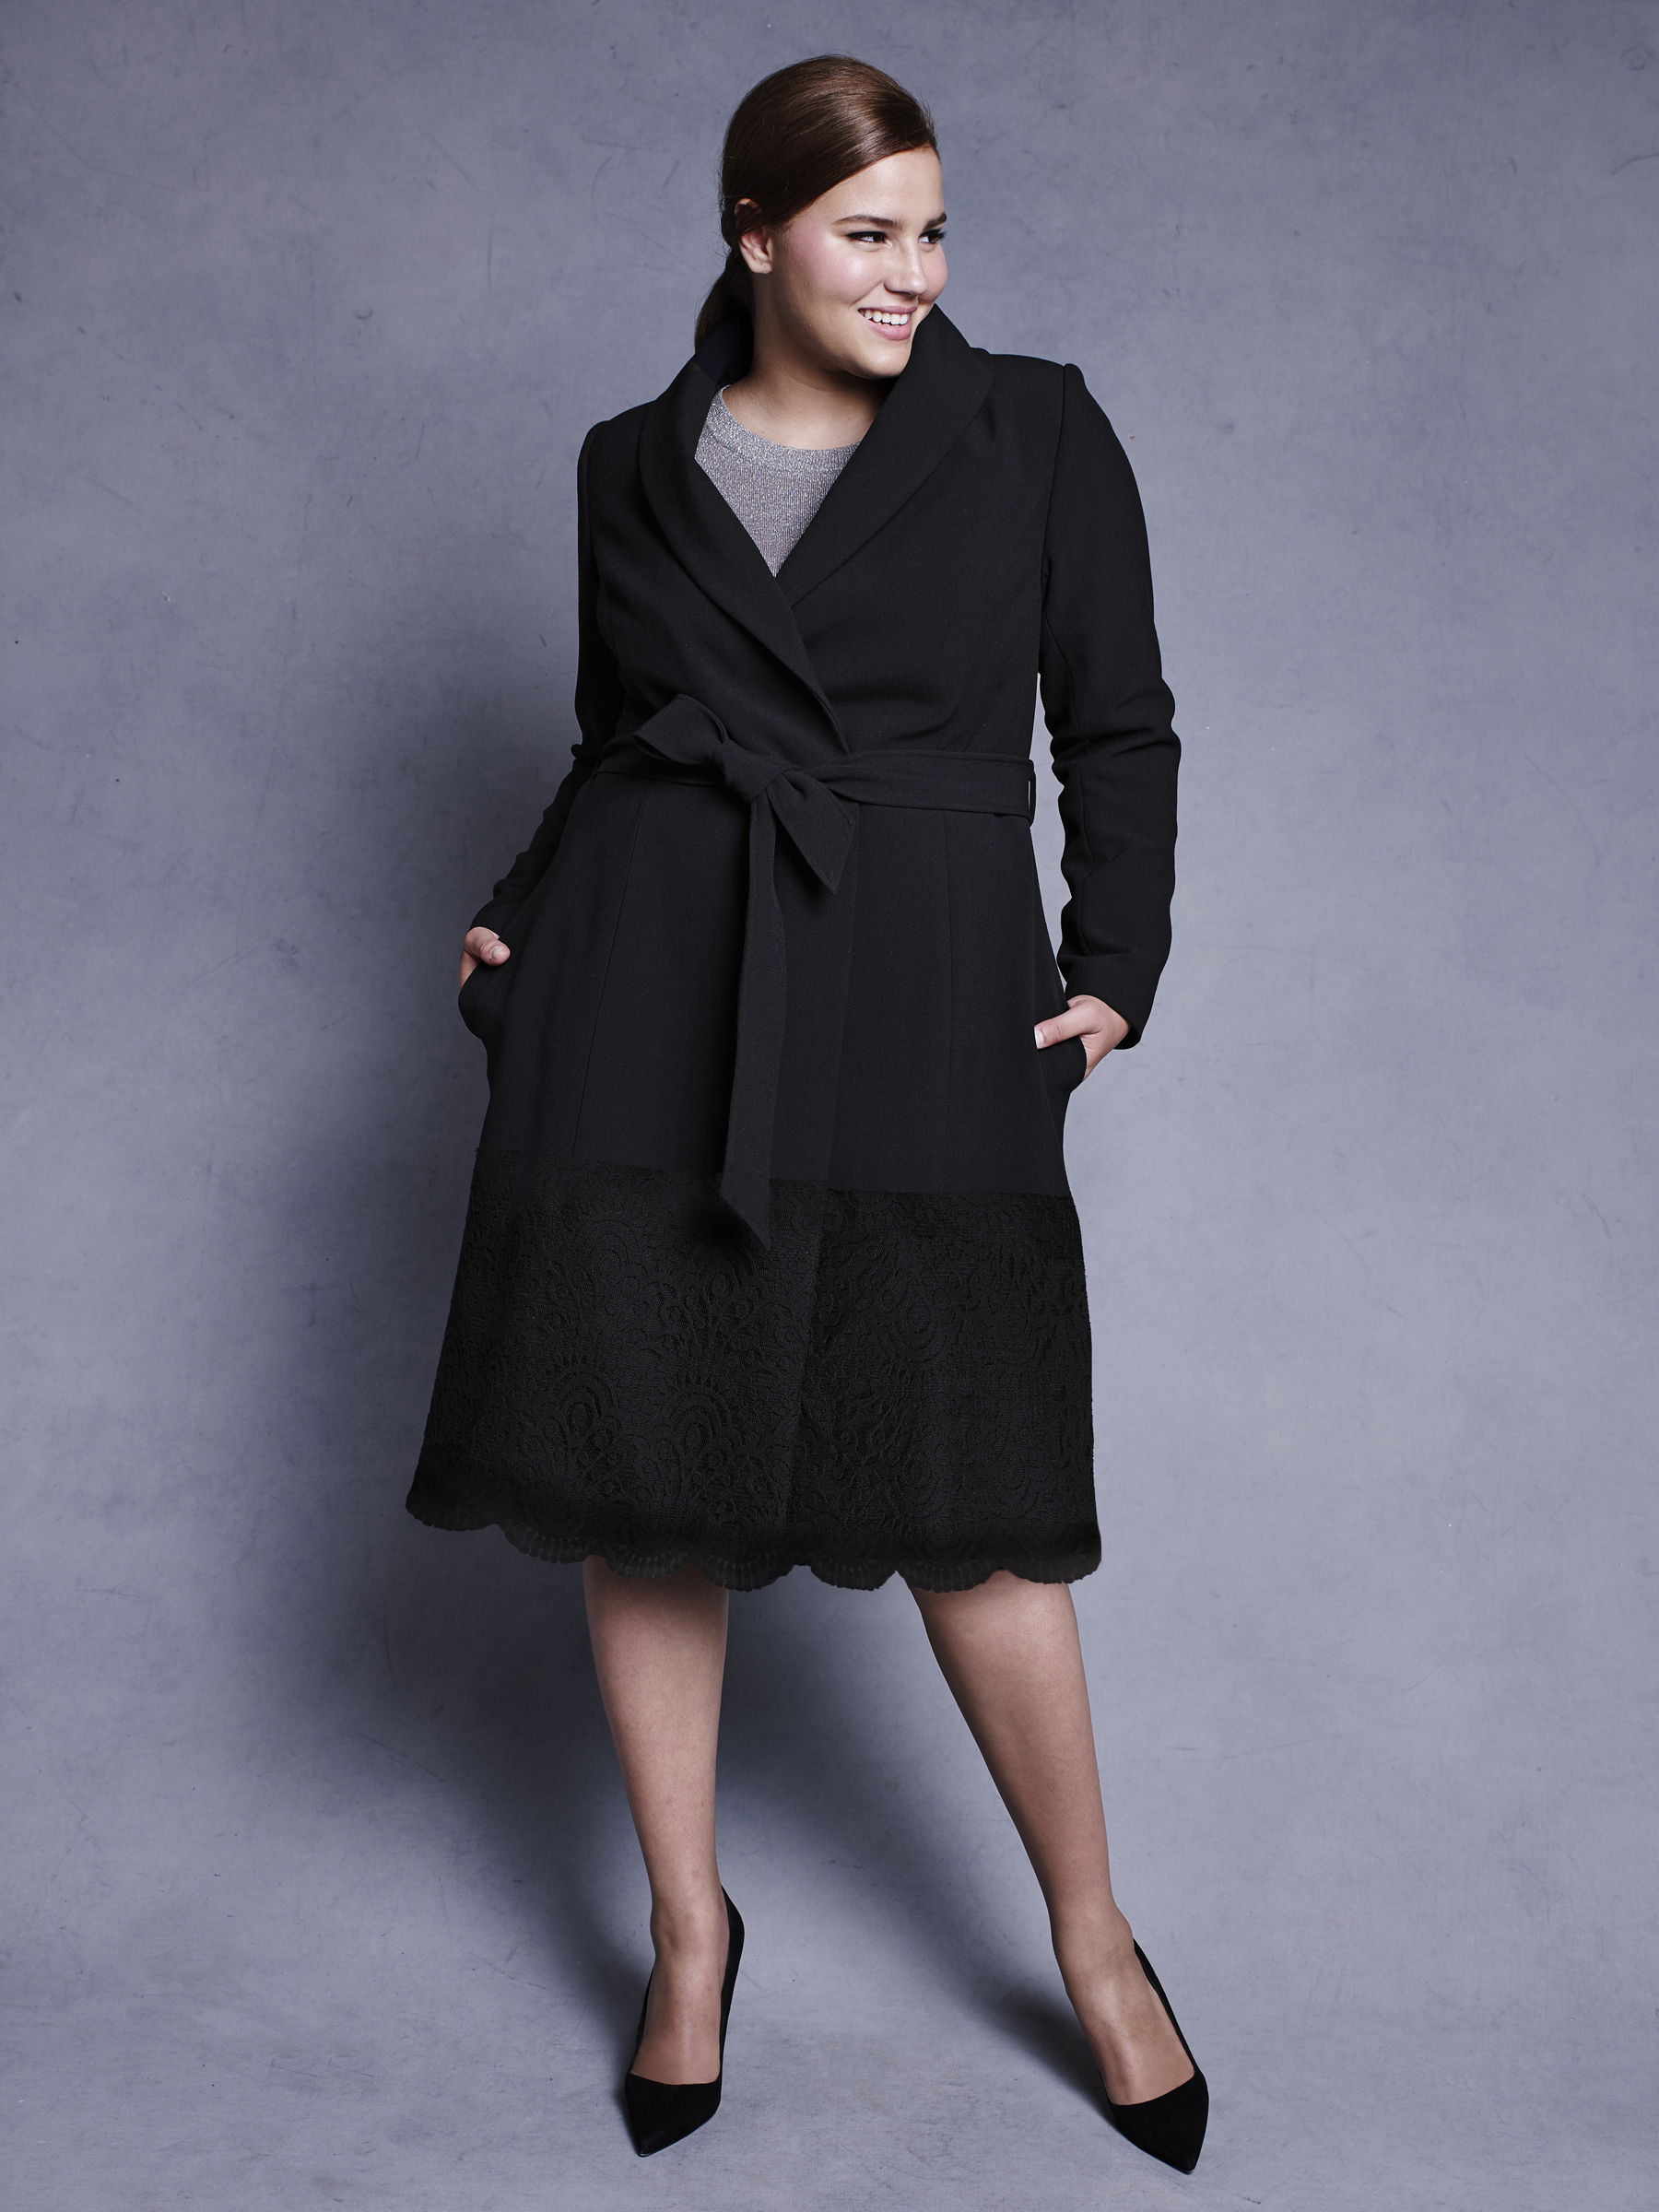 020cb0fcac2 Lela Rose for Lane Bryant Holiday Collection